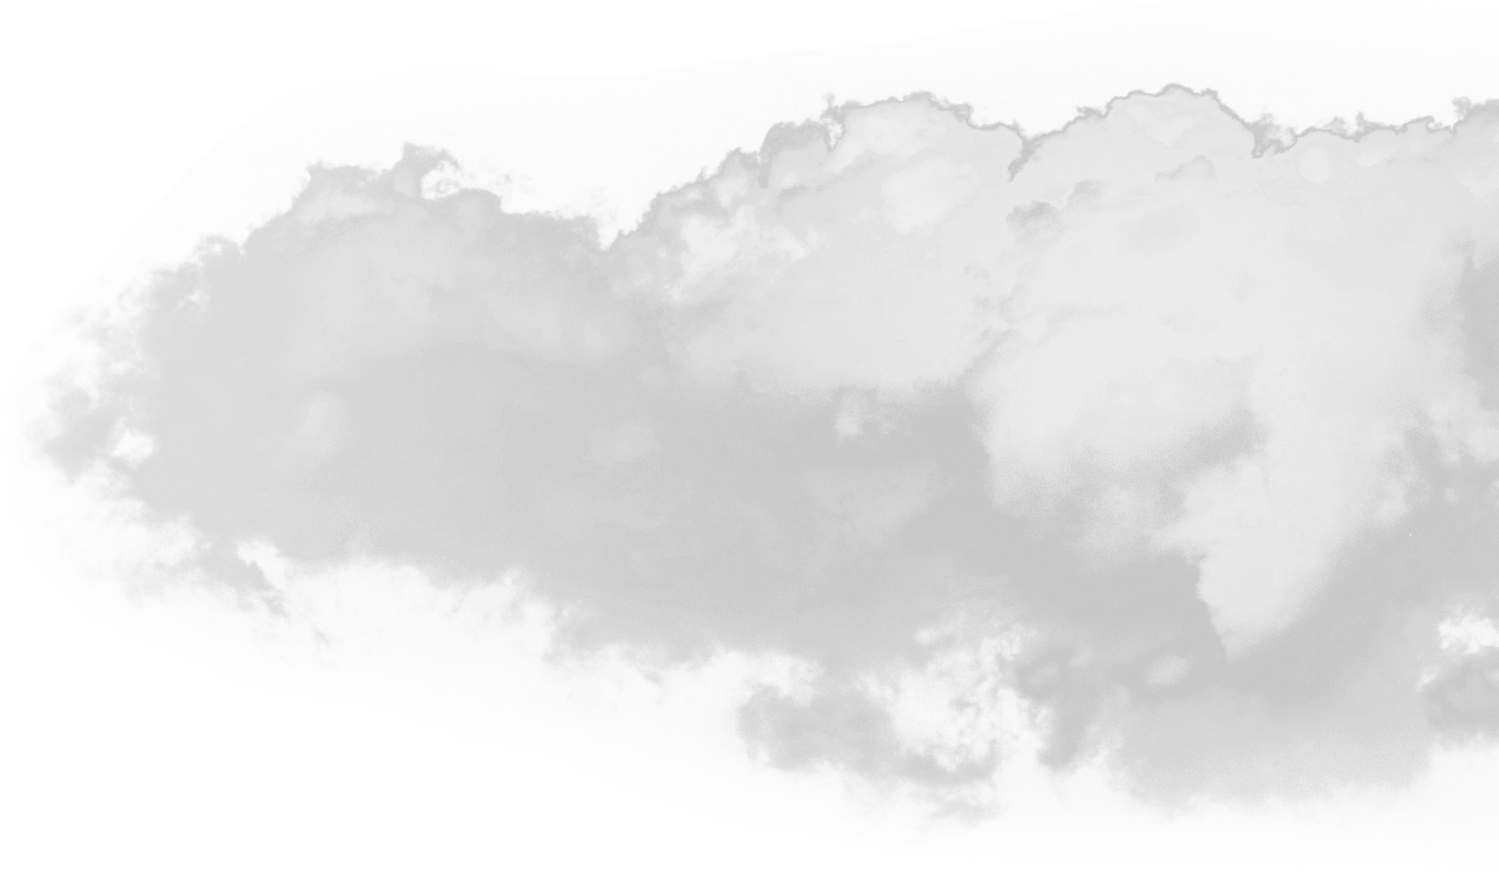 Sun coming out of dark clouds clipart clipart black and white library Transparent Smoke Cloud For more on e-liquid go to: fractaleliquid ... clipart black and white library